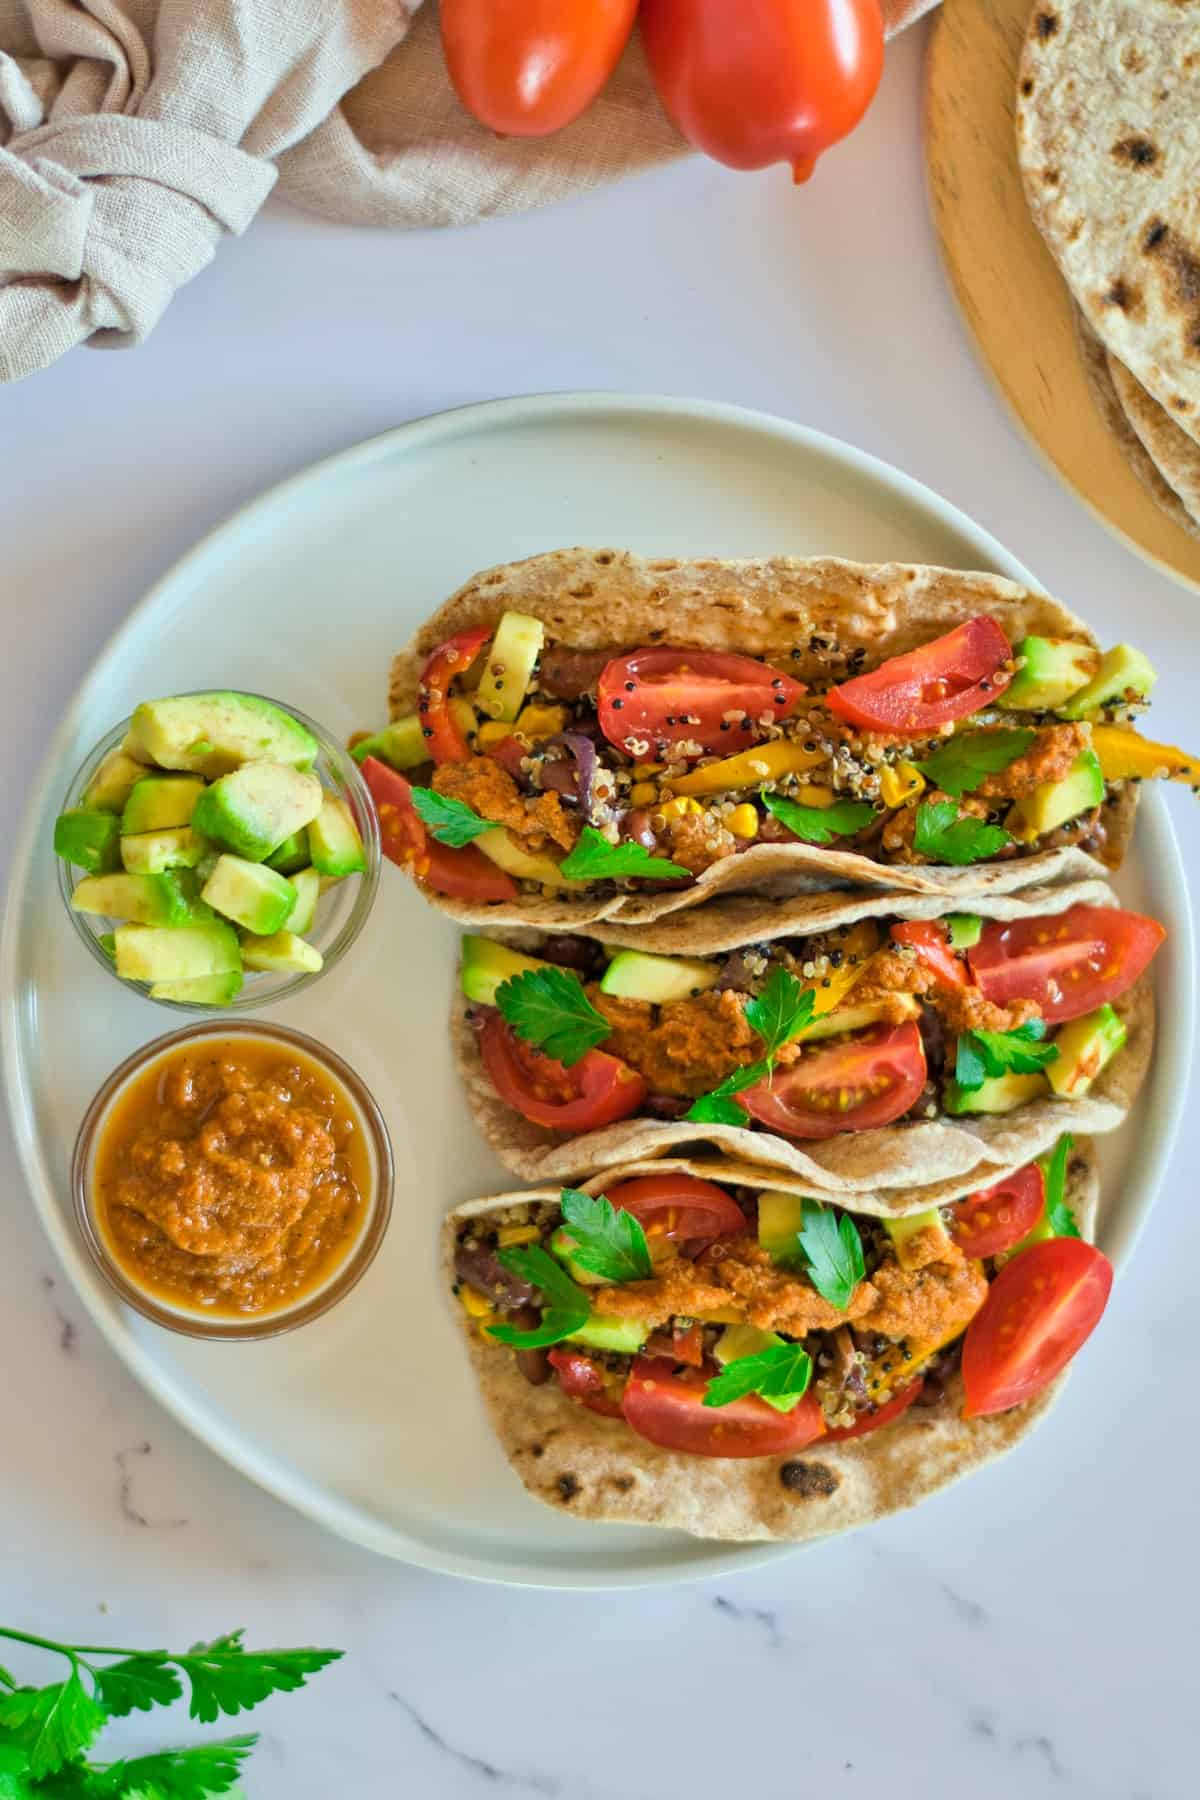 3 quinoa tacos on white plate with side of avocado and salsa.